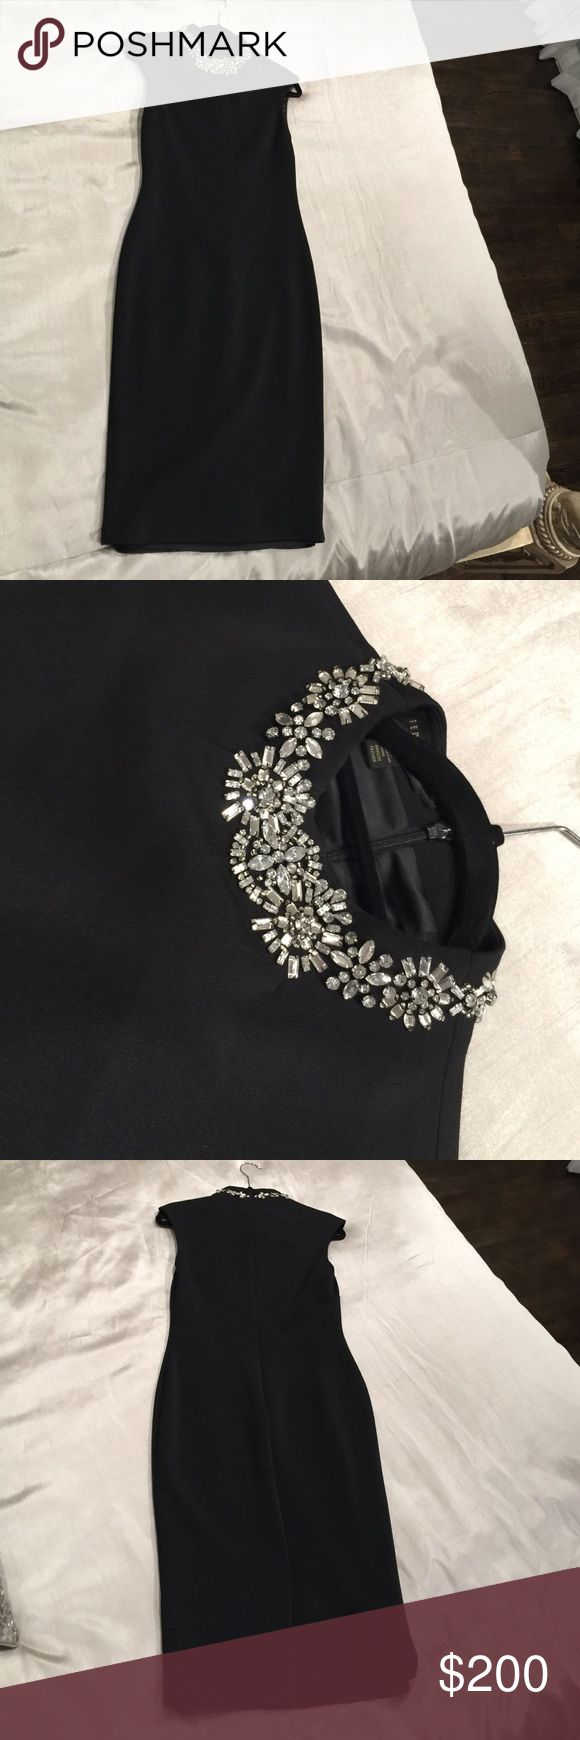 Ted Baker London! Black dress with crystal neck! Ted Baker London! Black dress with crystal neck! Classy dress. Perfect condition Ted Baker London Dresses